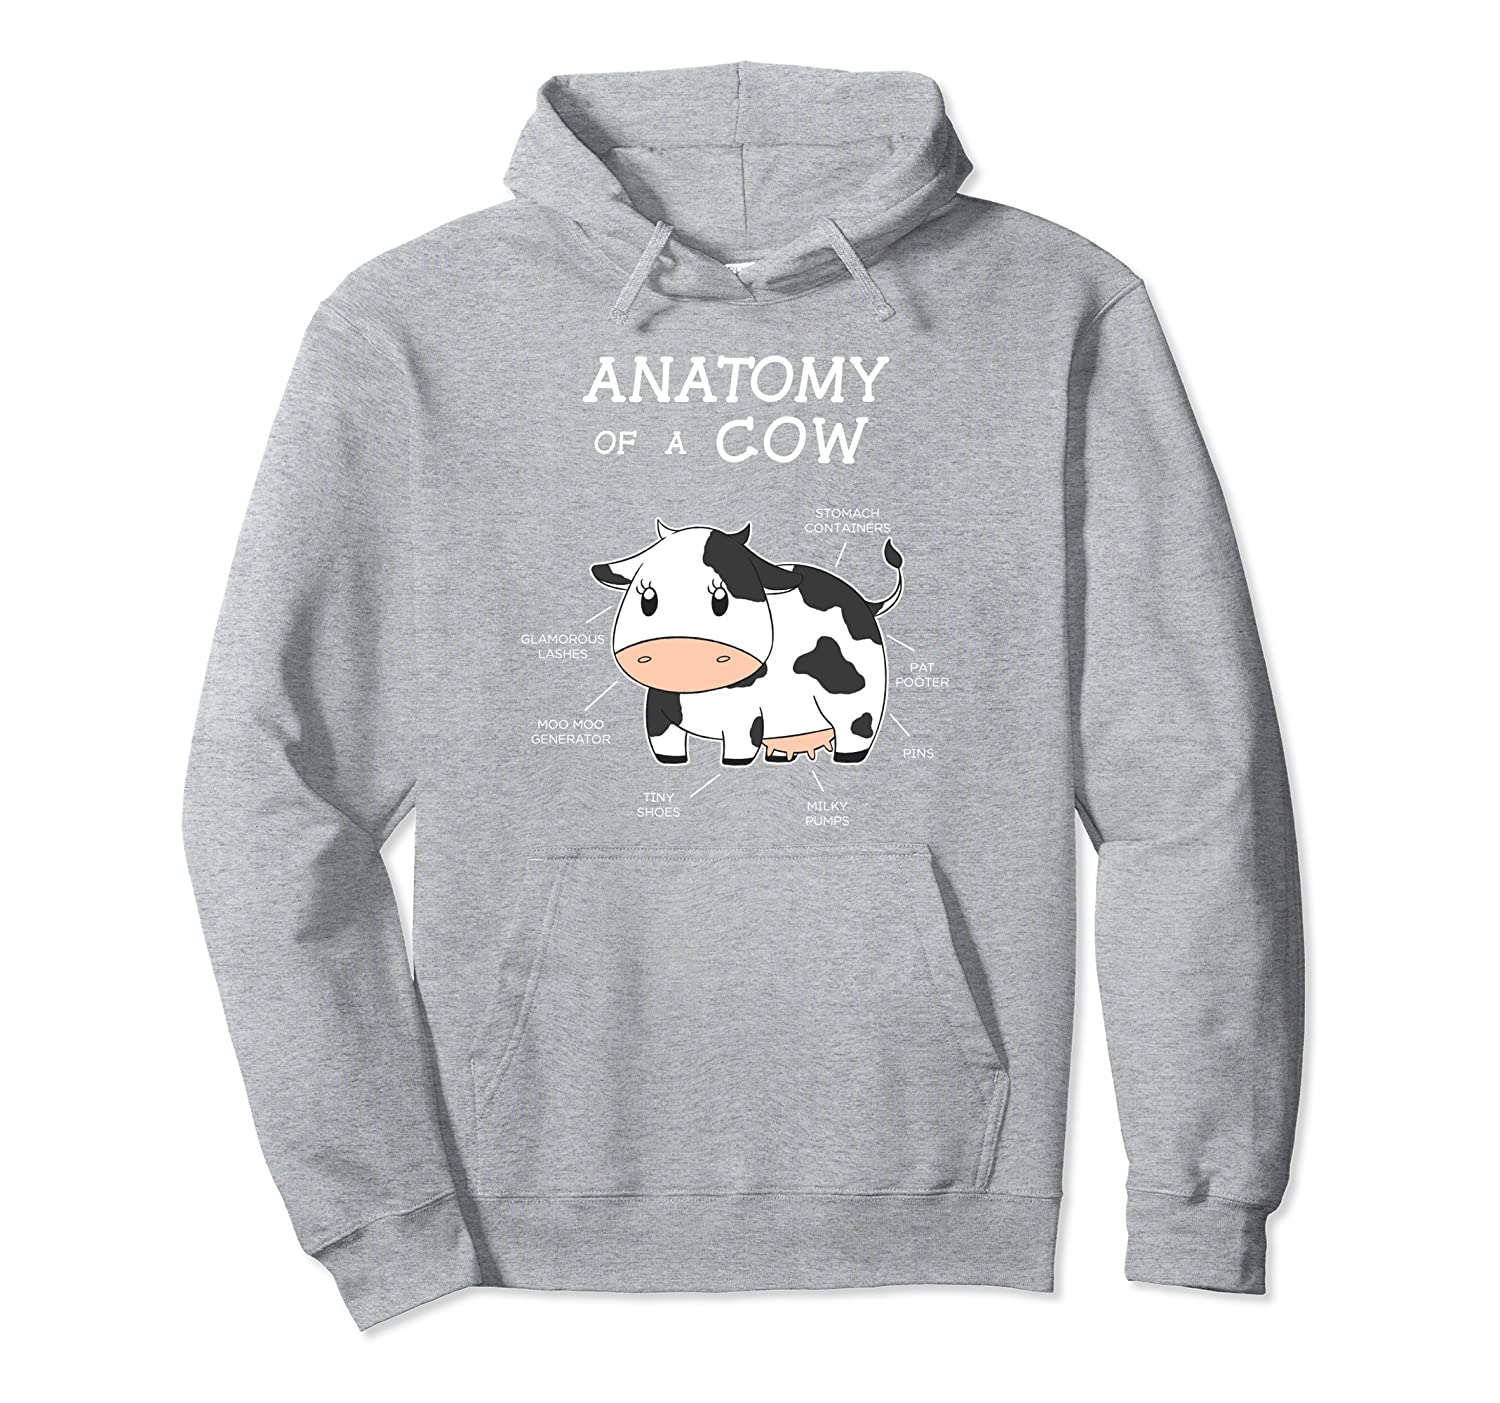 Amazon.com: Anatomy Of A Cow Funny Cattle Body Parts Hoodie: Clothing